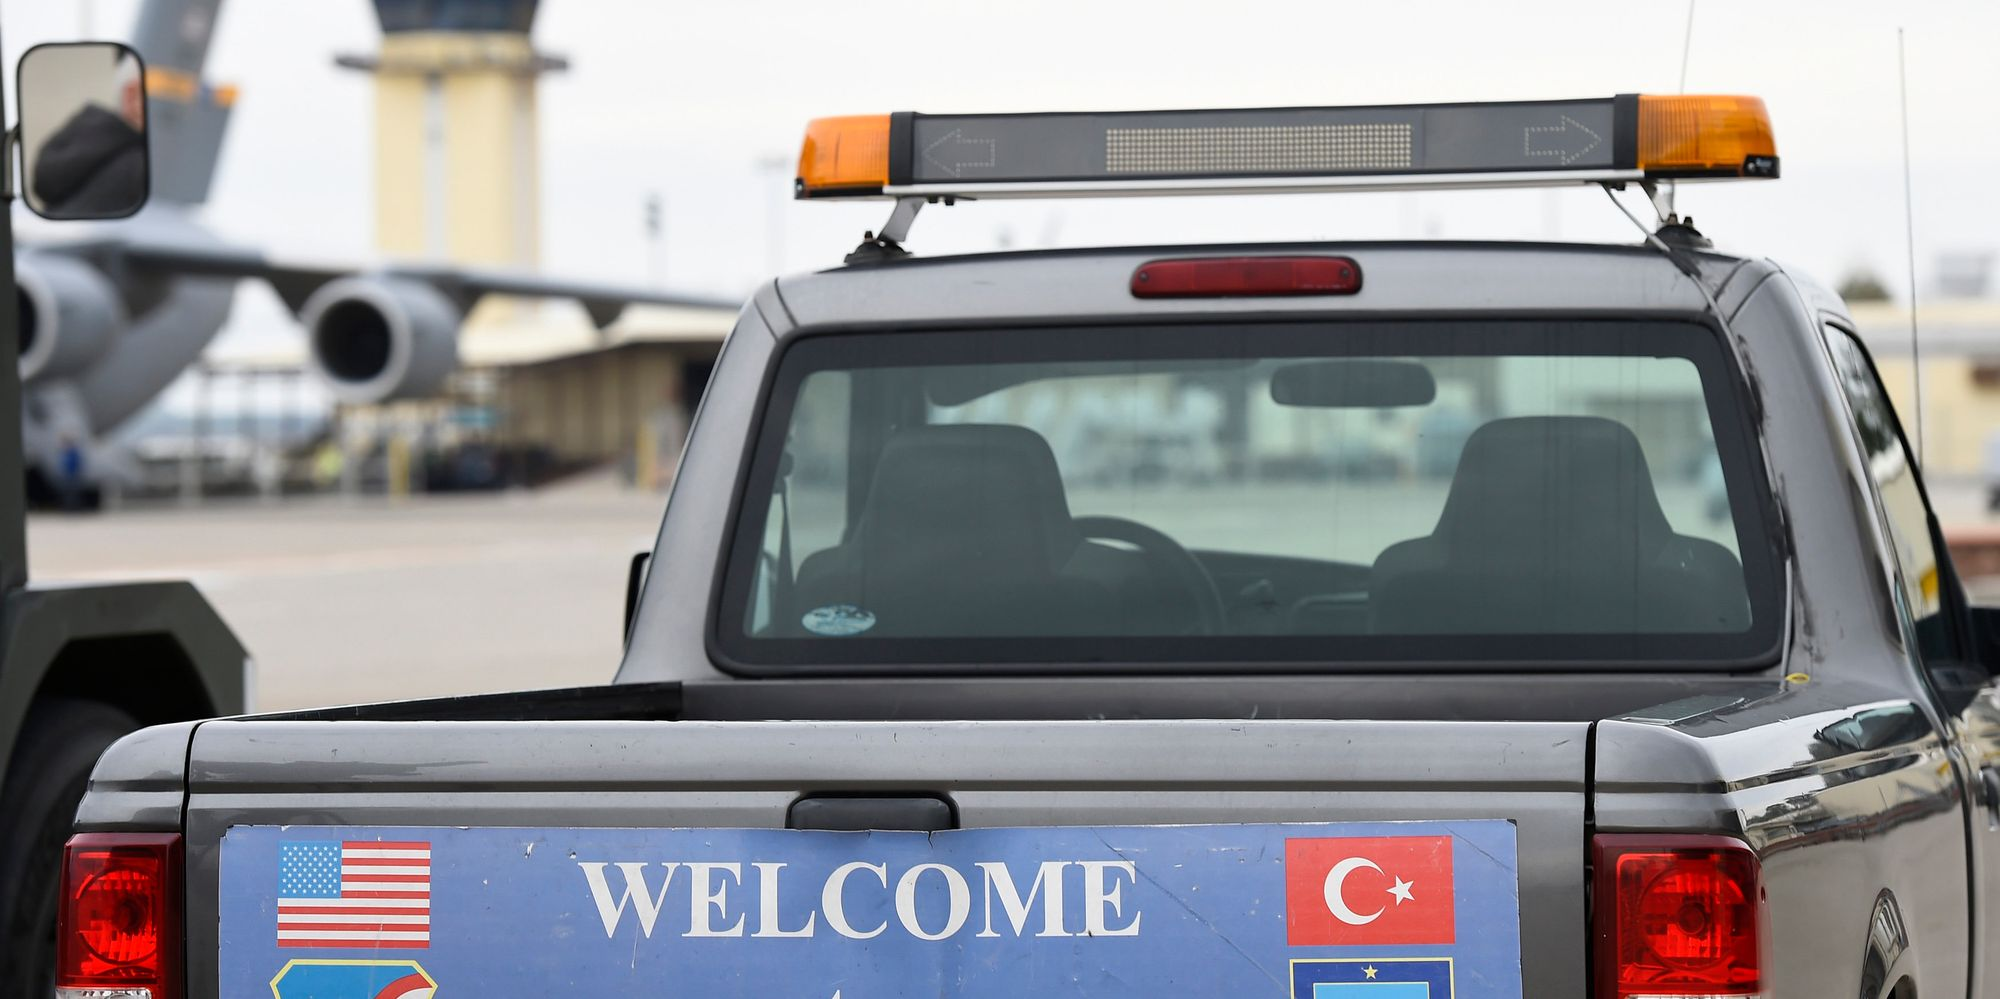 Turkey Reopening Incirlik Air Base To U.S. Planes After Coup Attempt